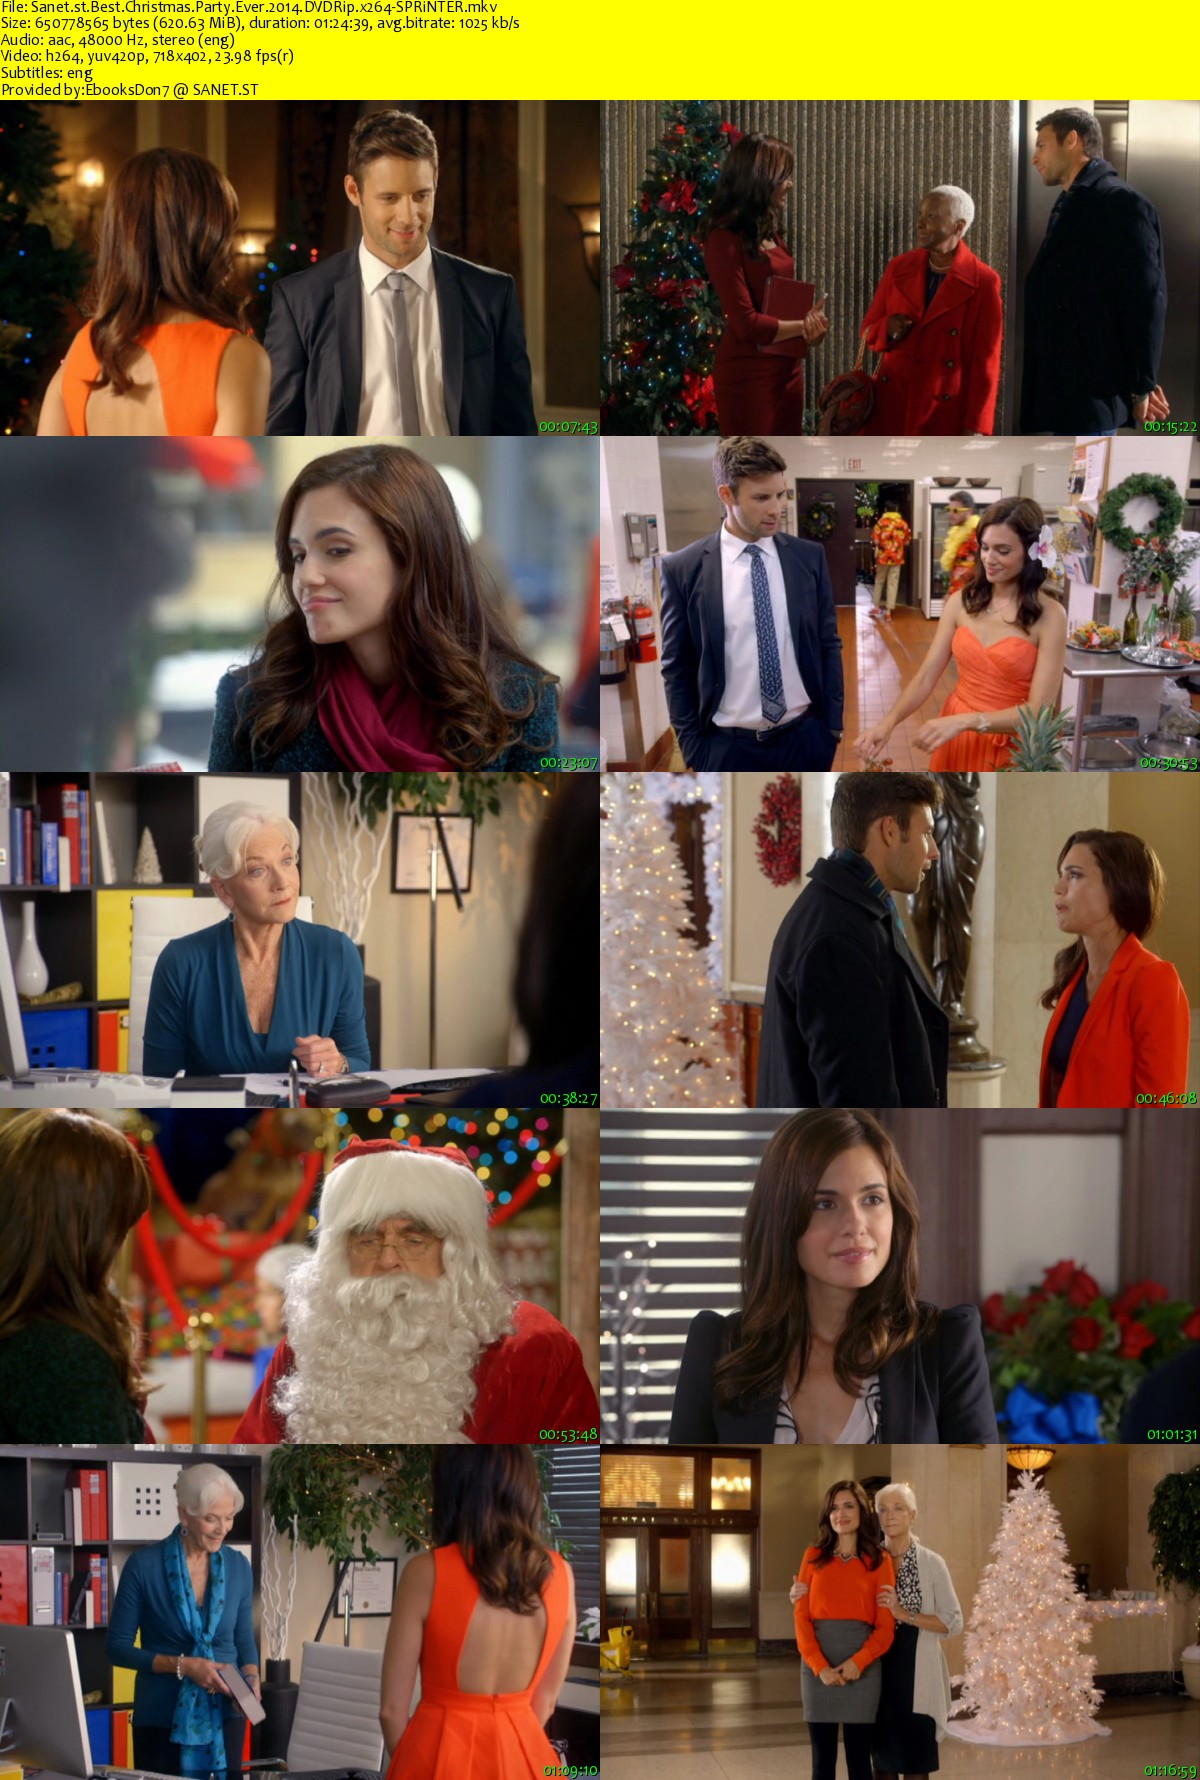 Best Christmas Party Ever.Download Best Christmas Party Ever 2014 Dvdrip X264 Sprinter